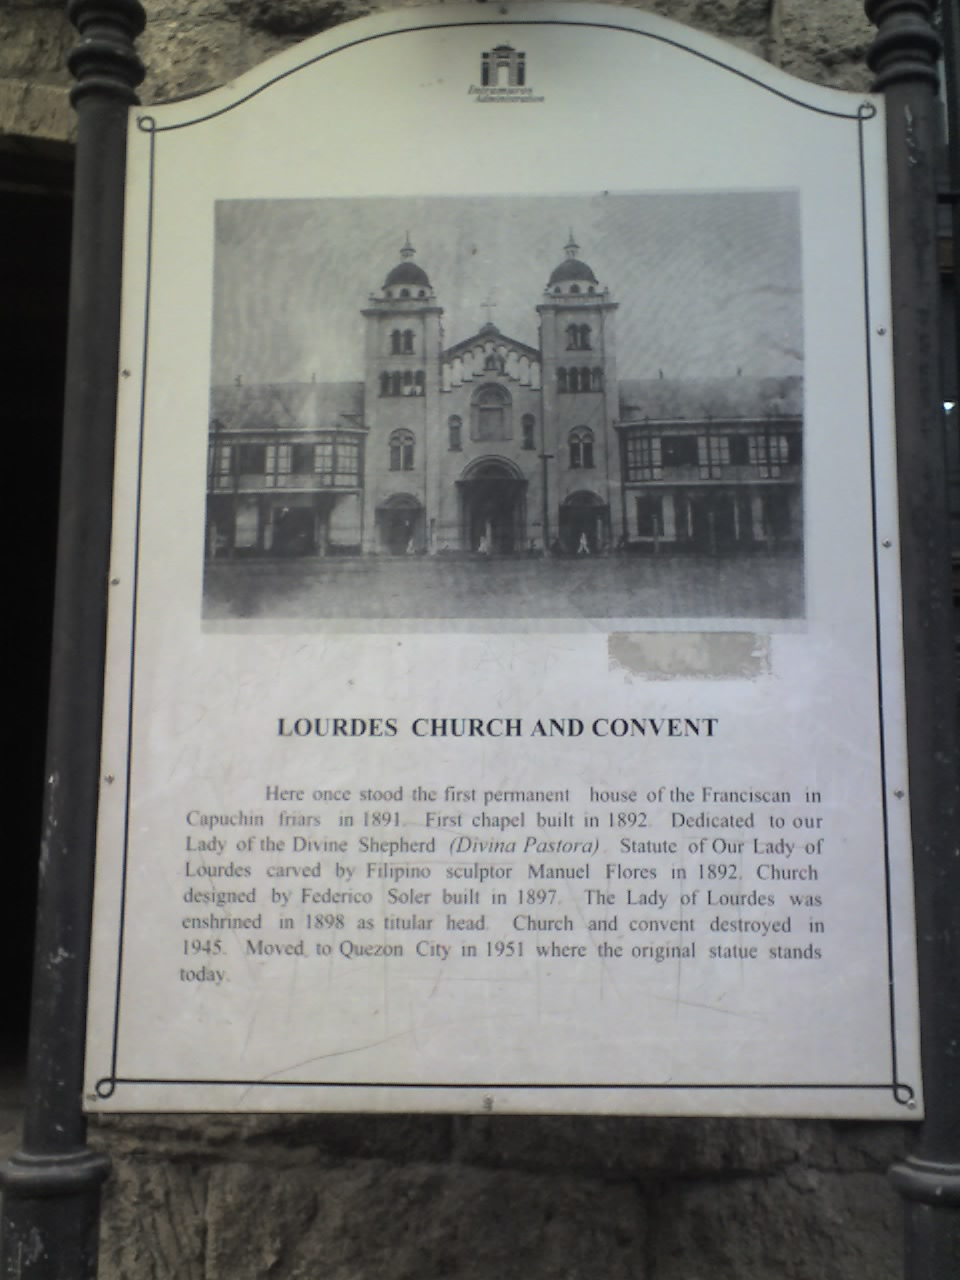 LOURDES CHURCH AND CONVENT